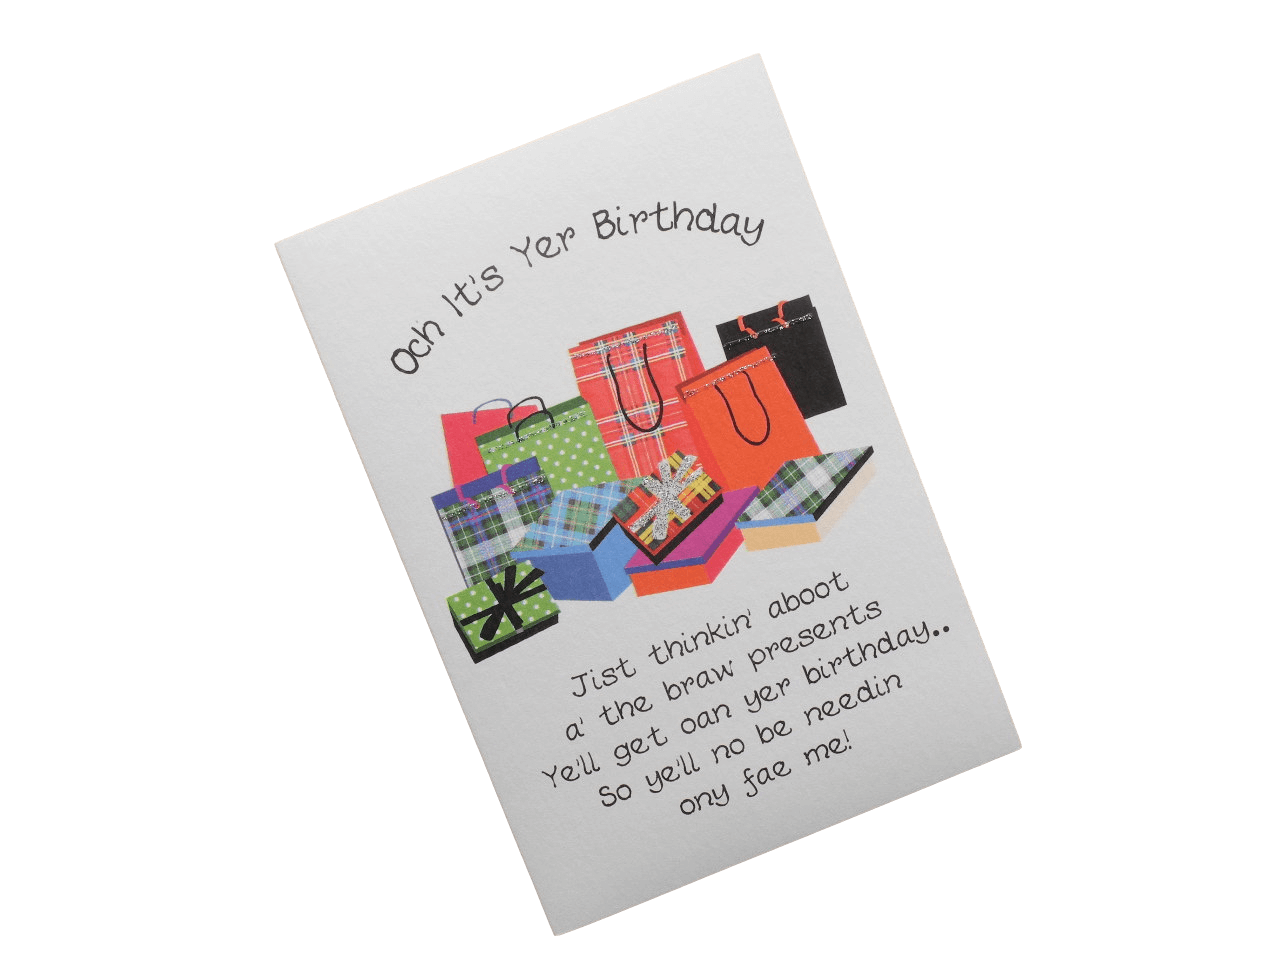 scottish birthday card tartan presents doric scots language